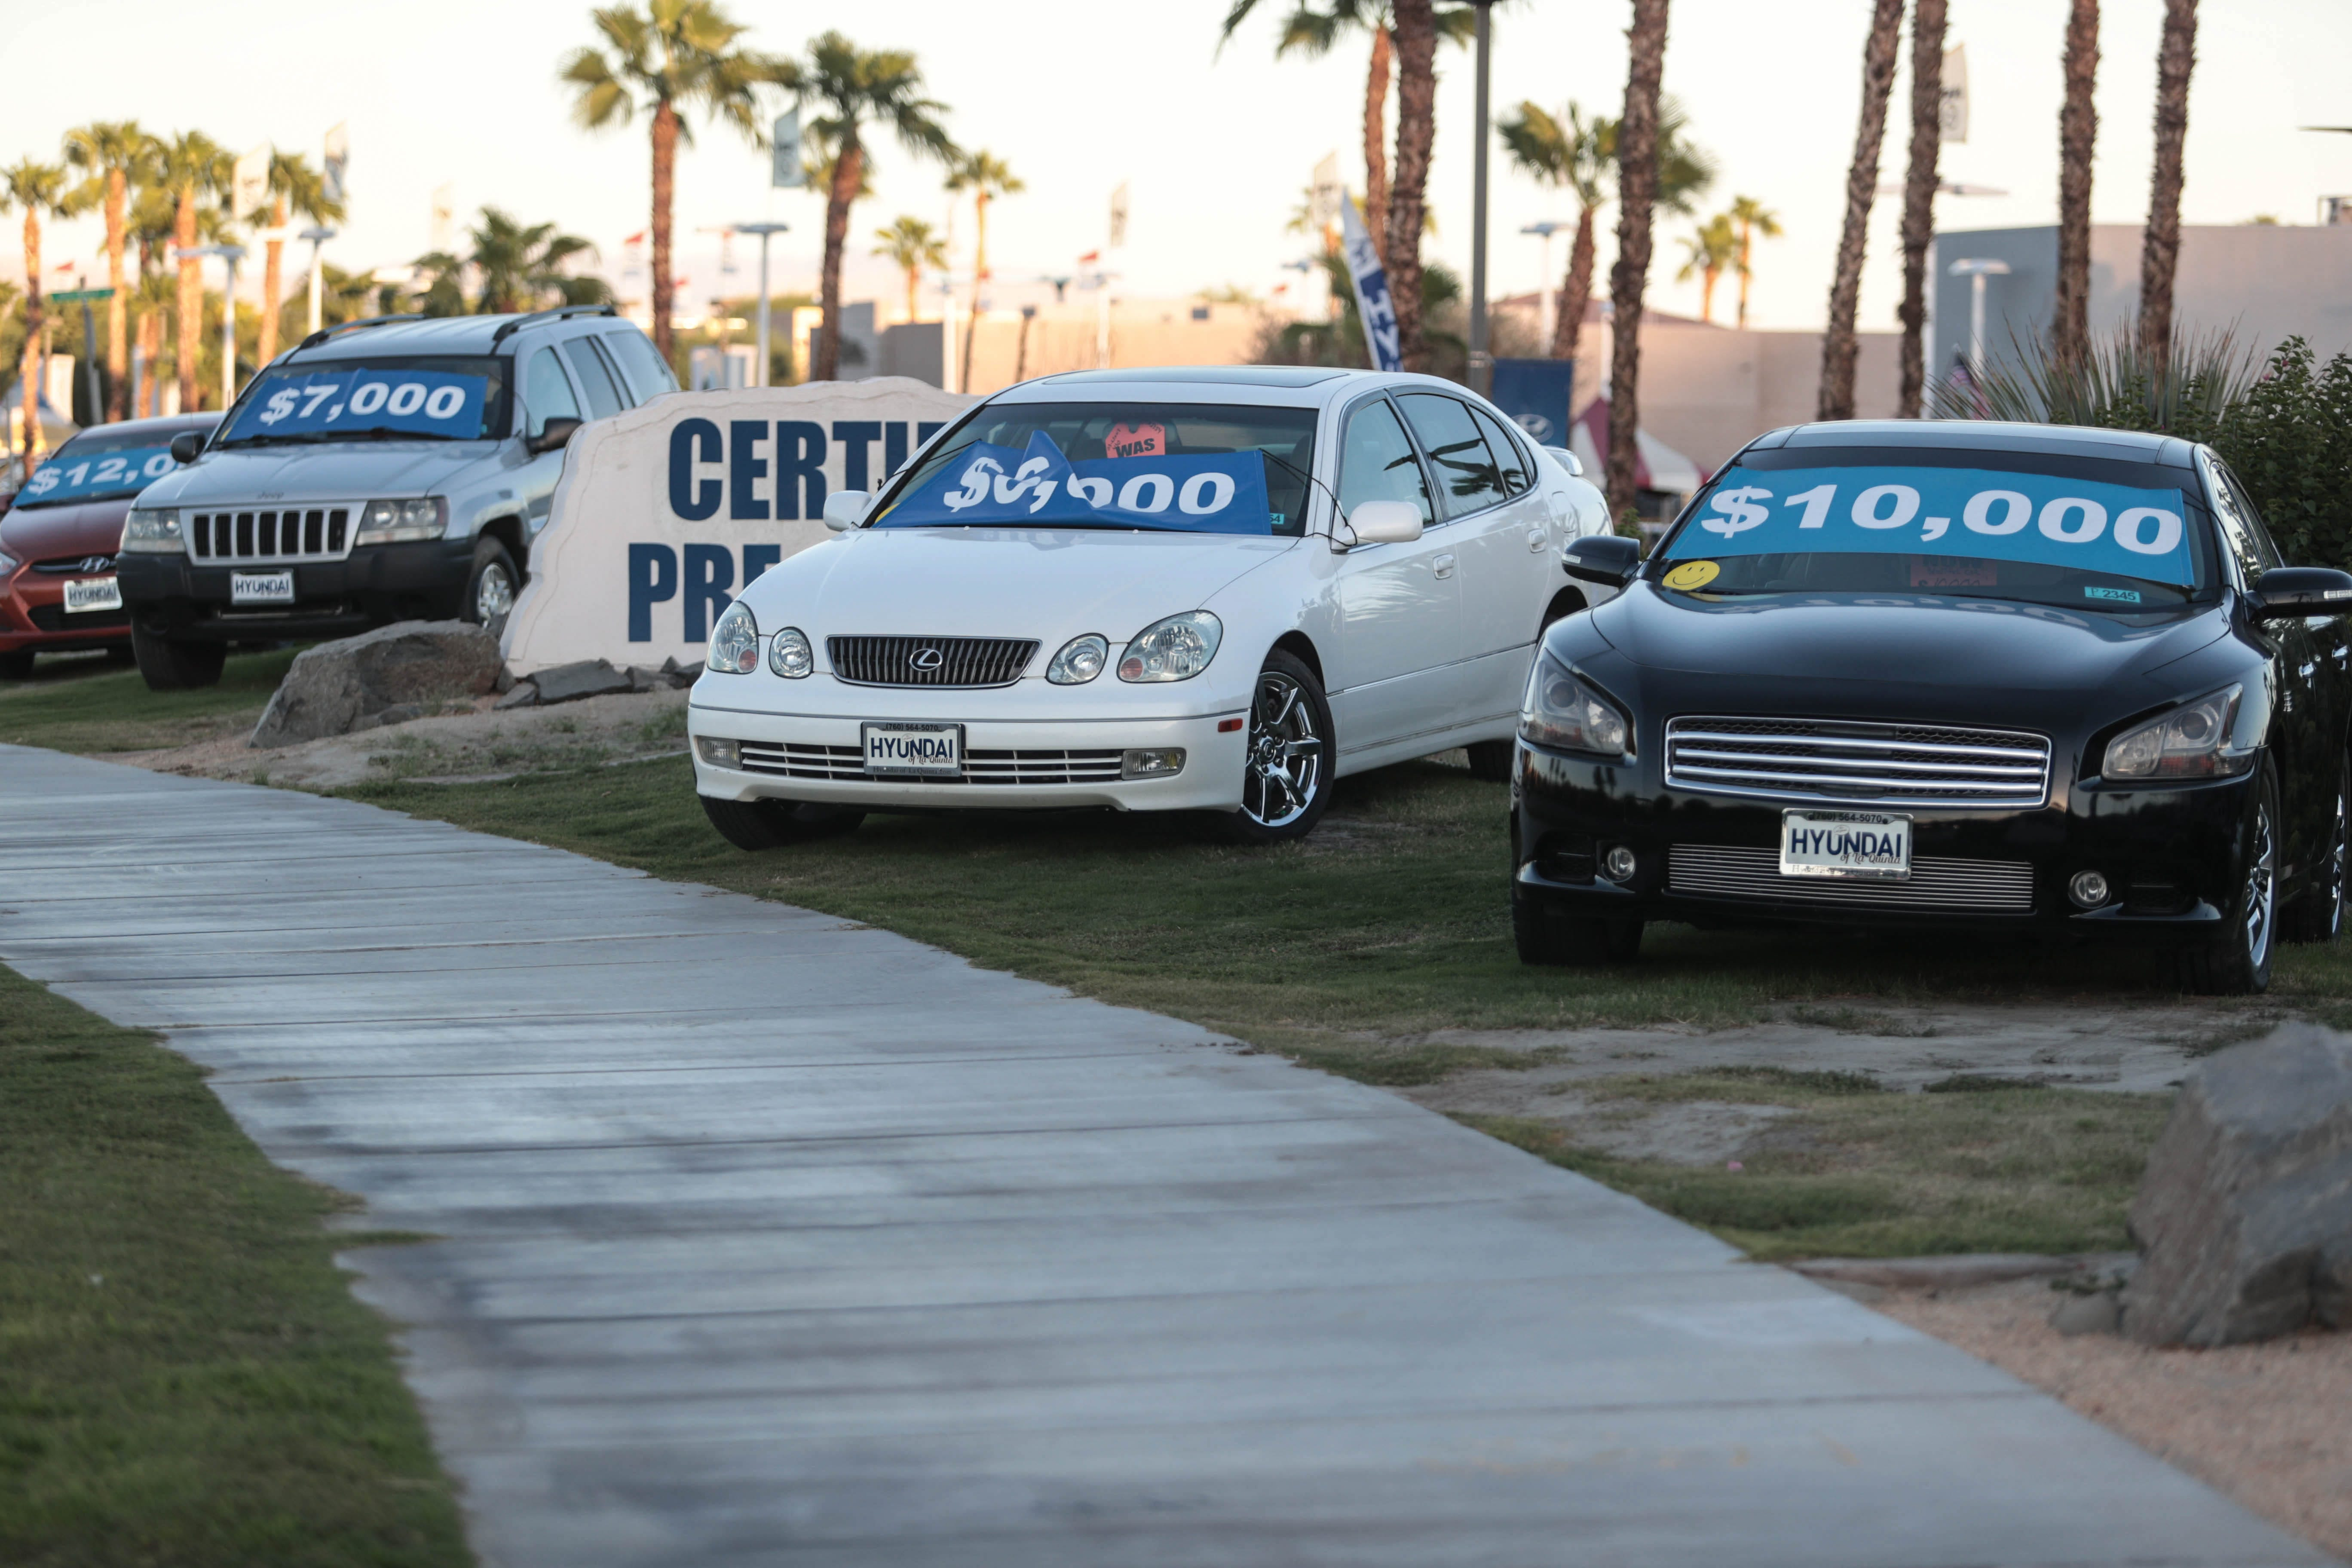 Wonderful Used Cars On Display Right Up To The Side Walk At Hyundai Of La Quinta On